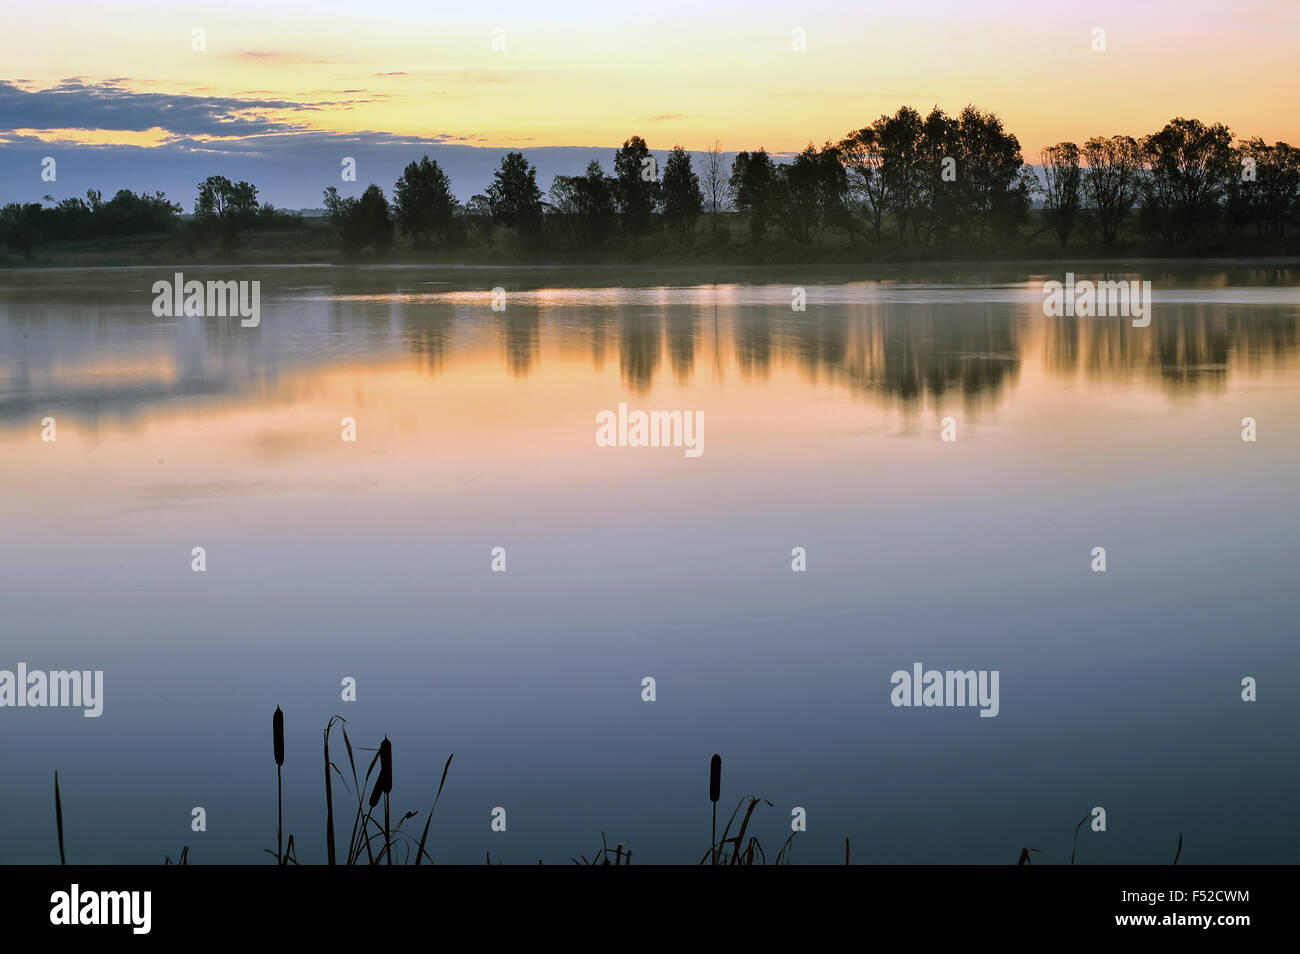 Sunrise landscape with a lake and the mist over the water - Stock Image